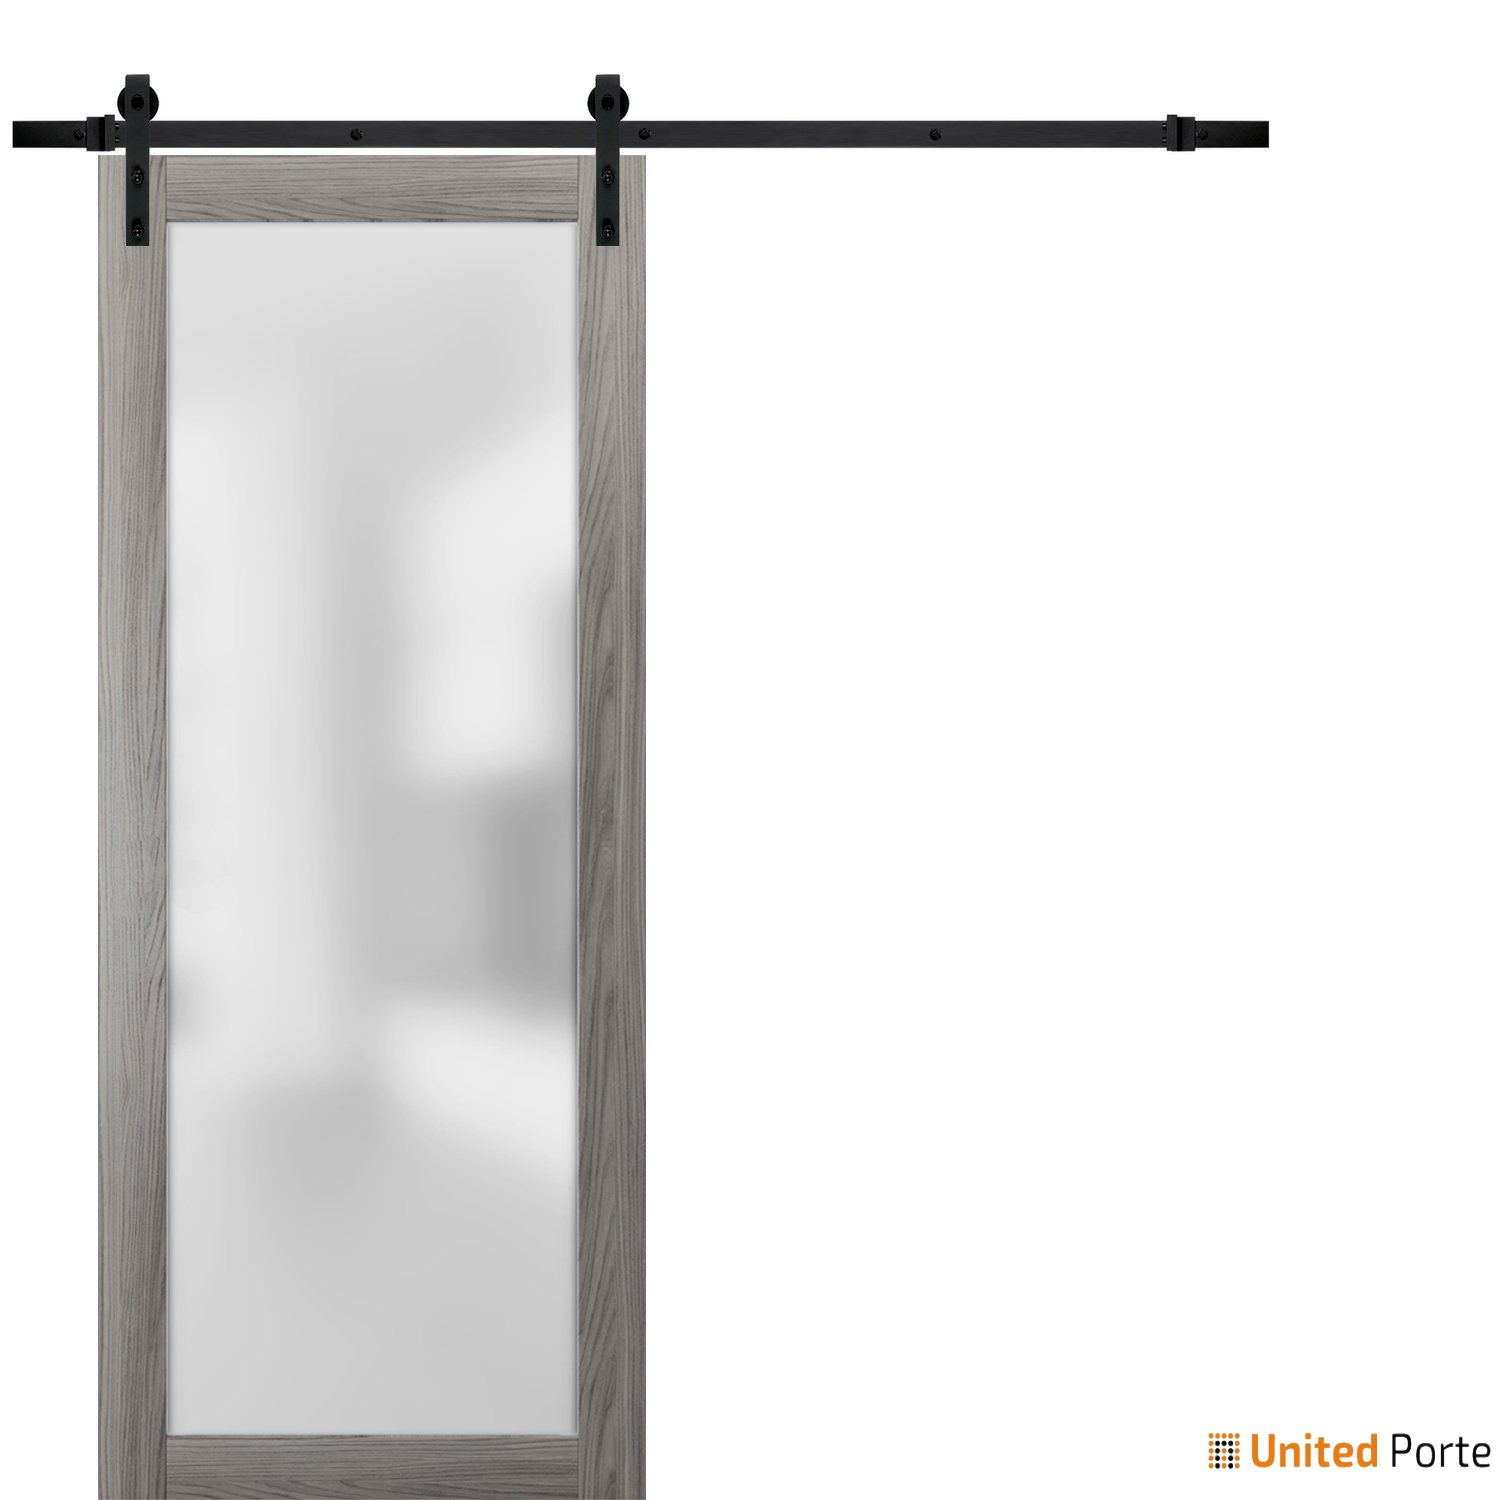 Planum 2102 Ginger Ash Sturdy Barn Door Frosted Tempered Glass with Black Hardware | Modern Solid Panel Interior Barn Doors